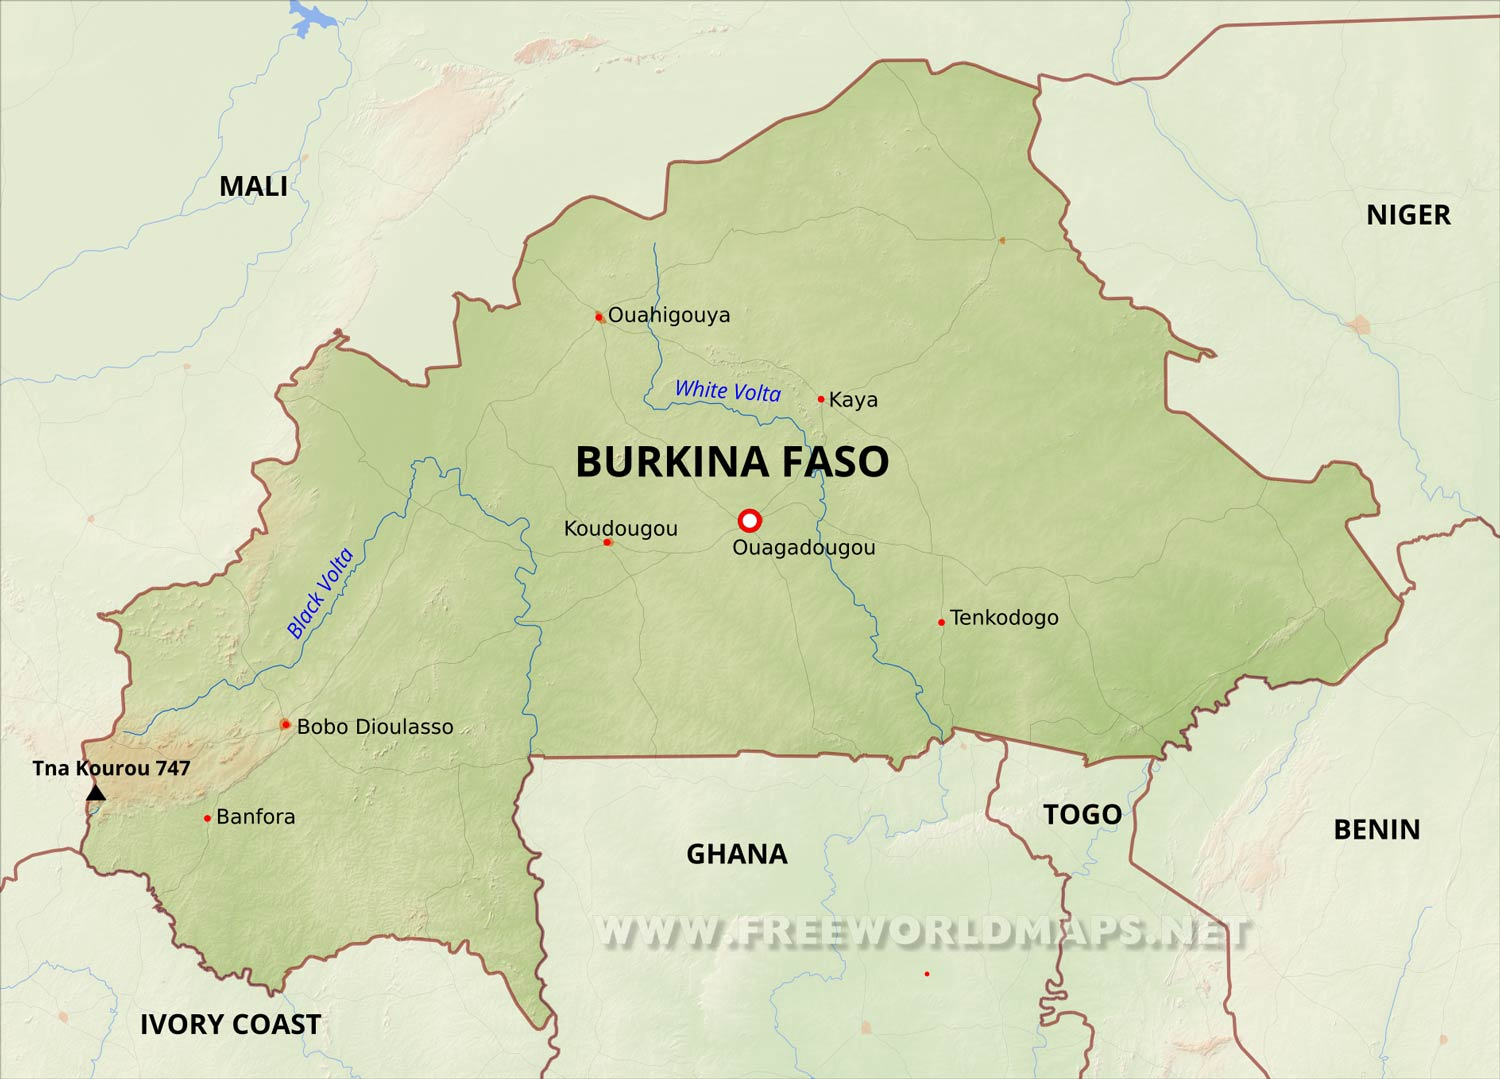 burkina faso on map Burkina Faso Physical Map burkina faso on map